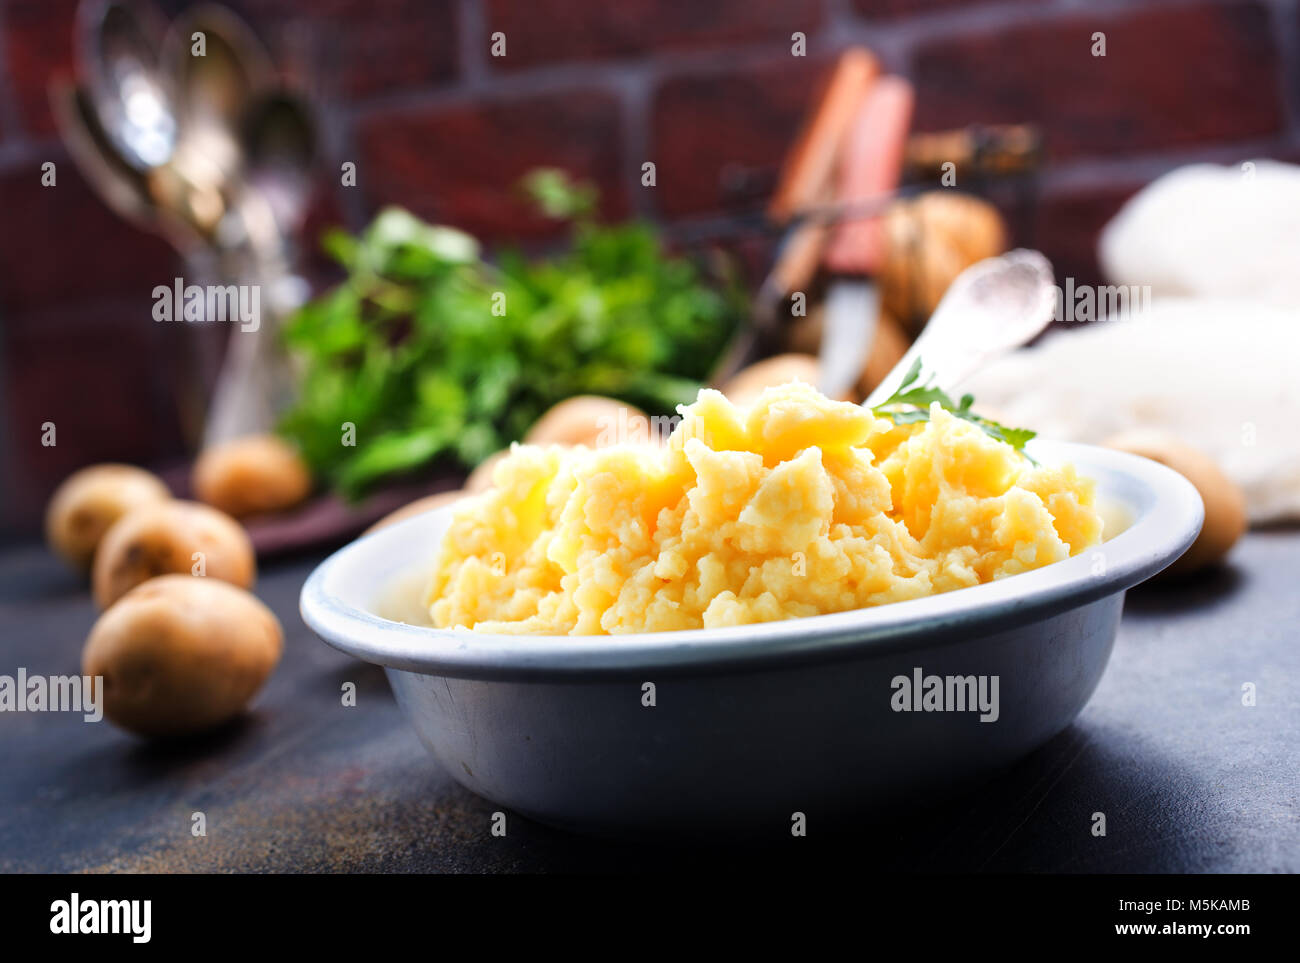 portion of mashed potatoes with butter on a plate - Stock Image